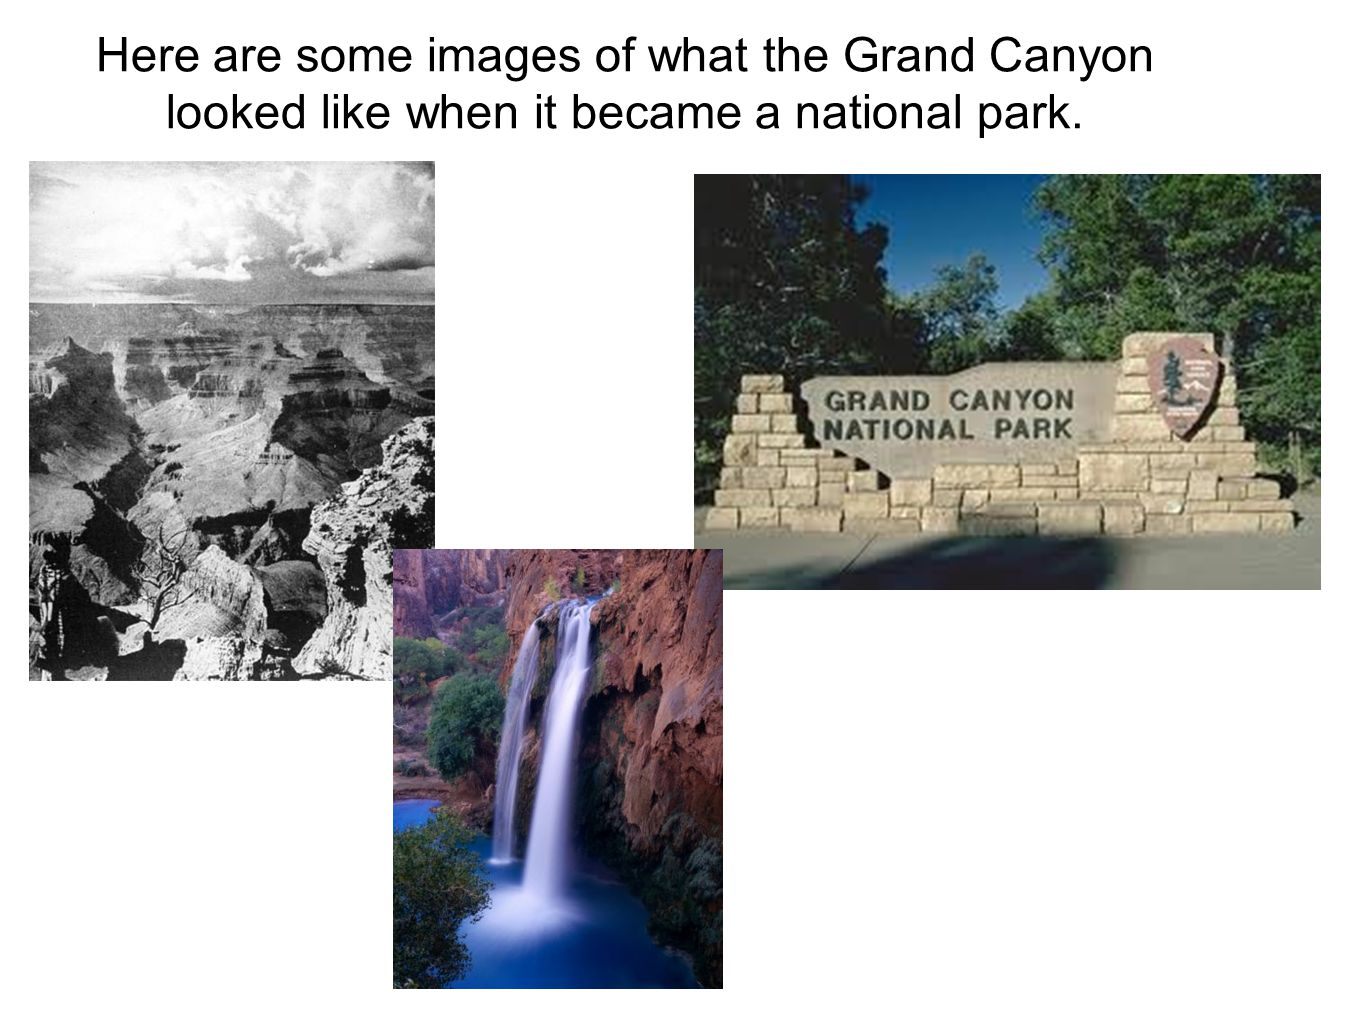 2 Interesting facts The oldest humans bones found were nearly 2,000 years old The Grand Canyon was achieved in as a national park in 1919